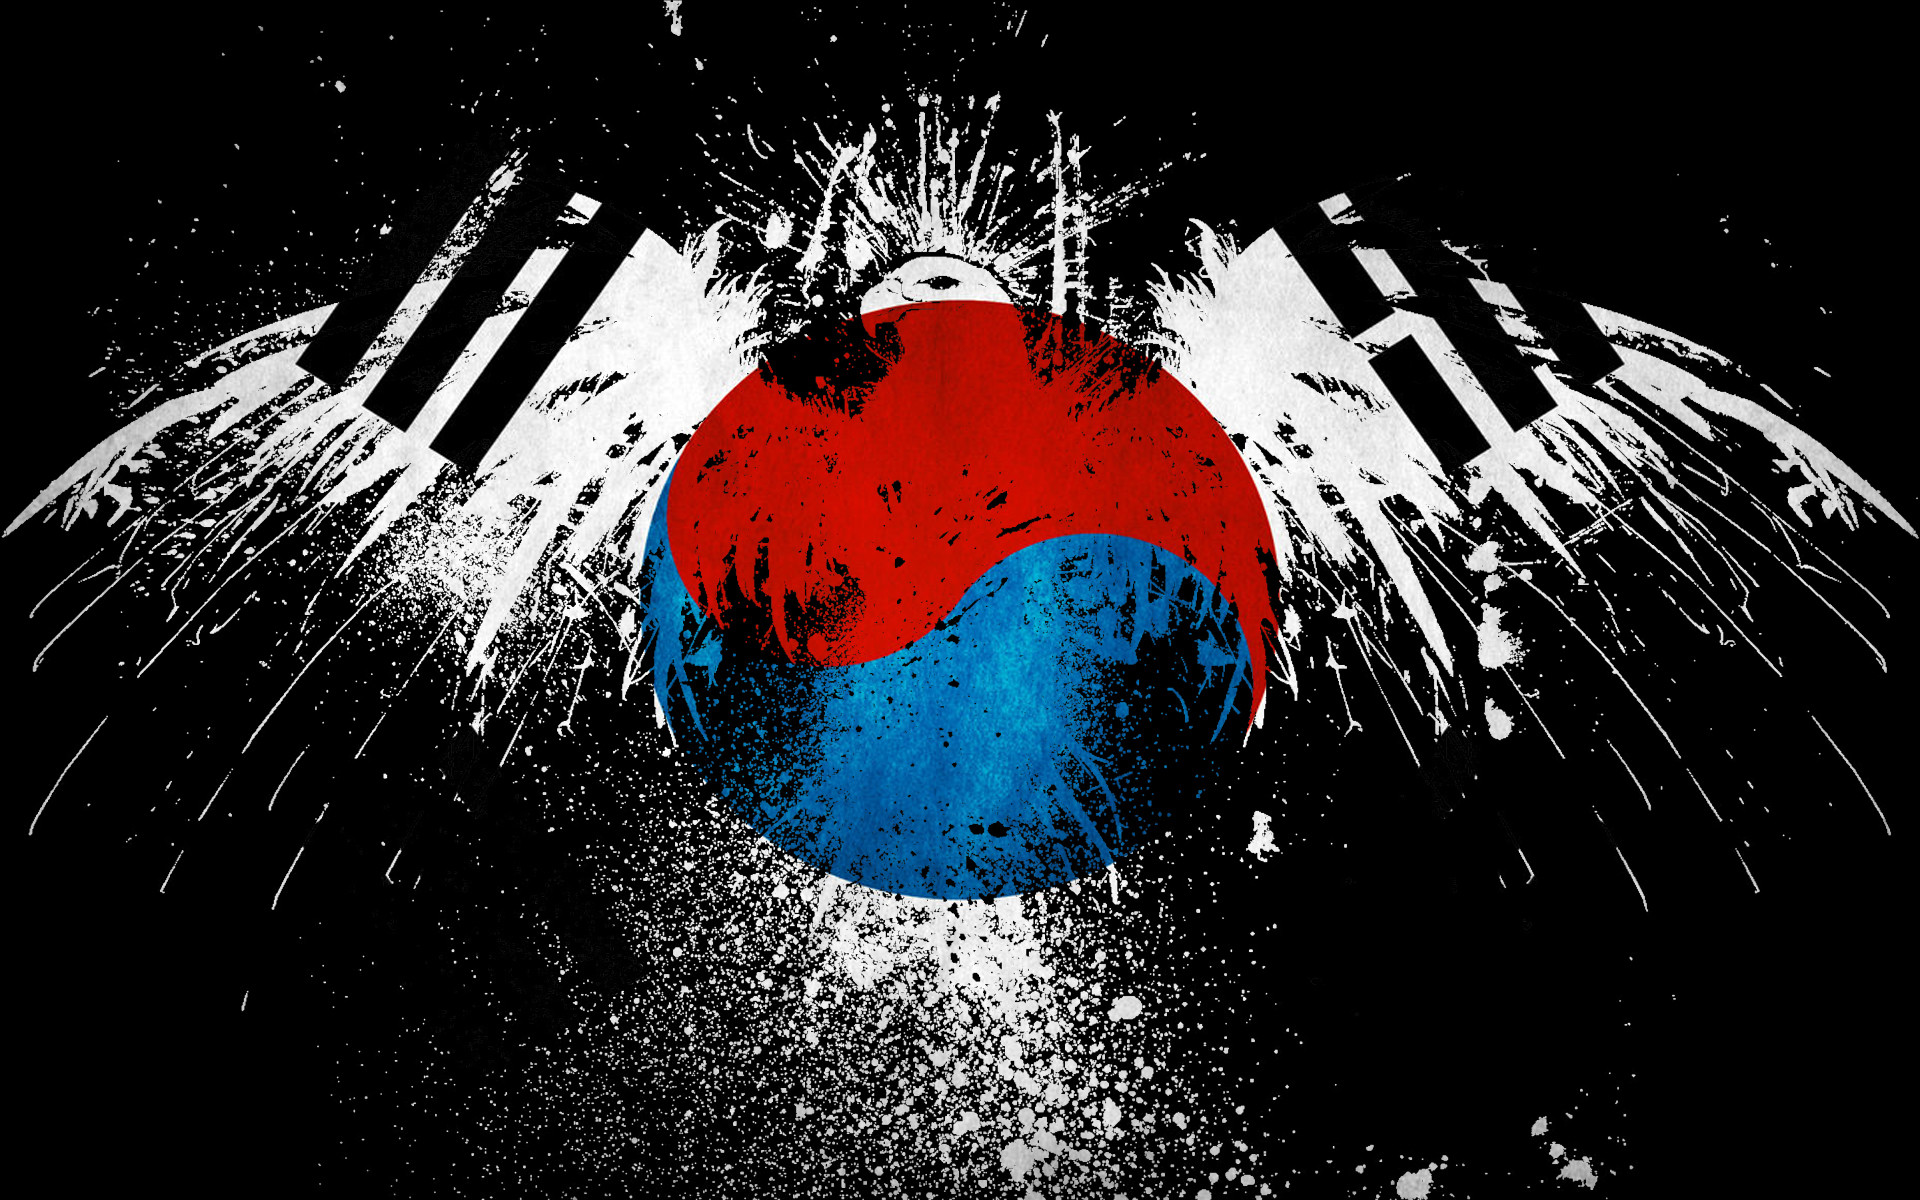 Download image Cool Desktop Background Korean PC, Android, iPhone and